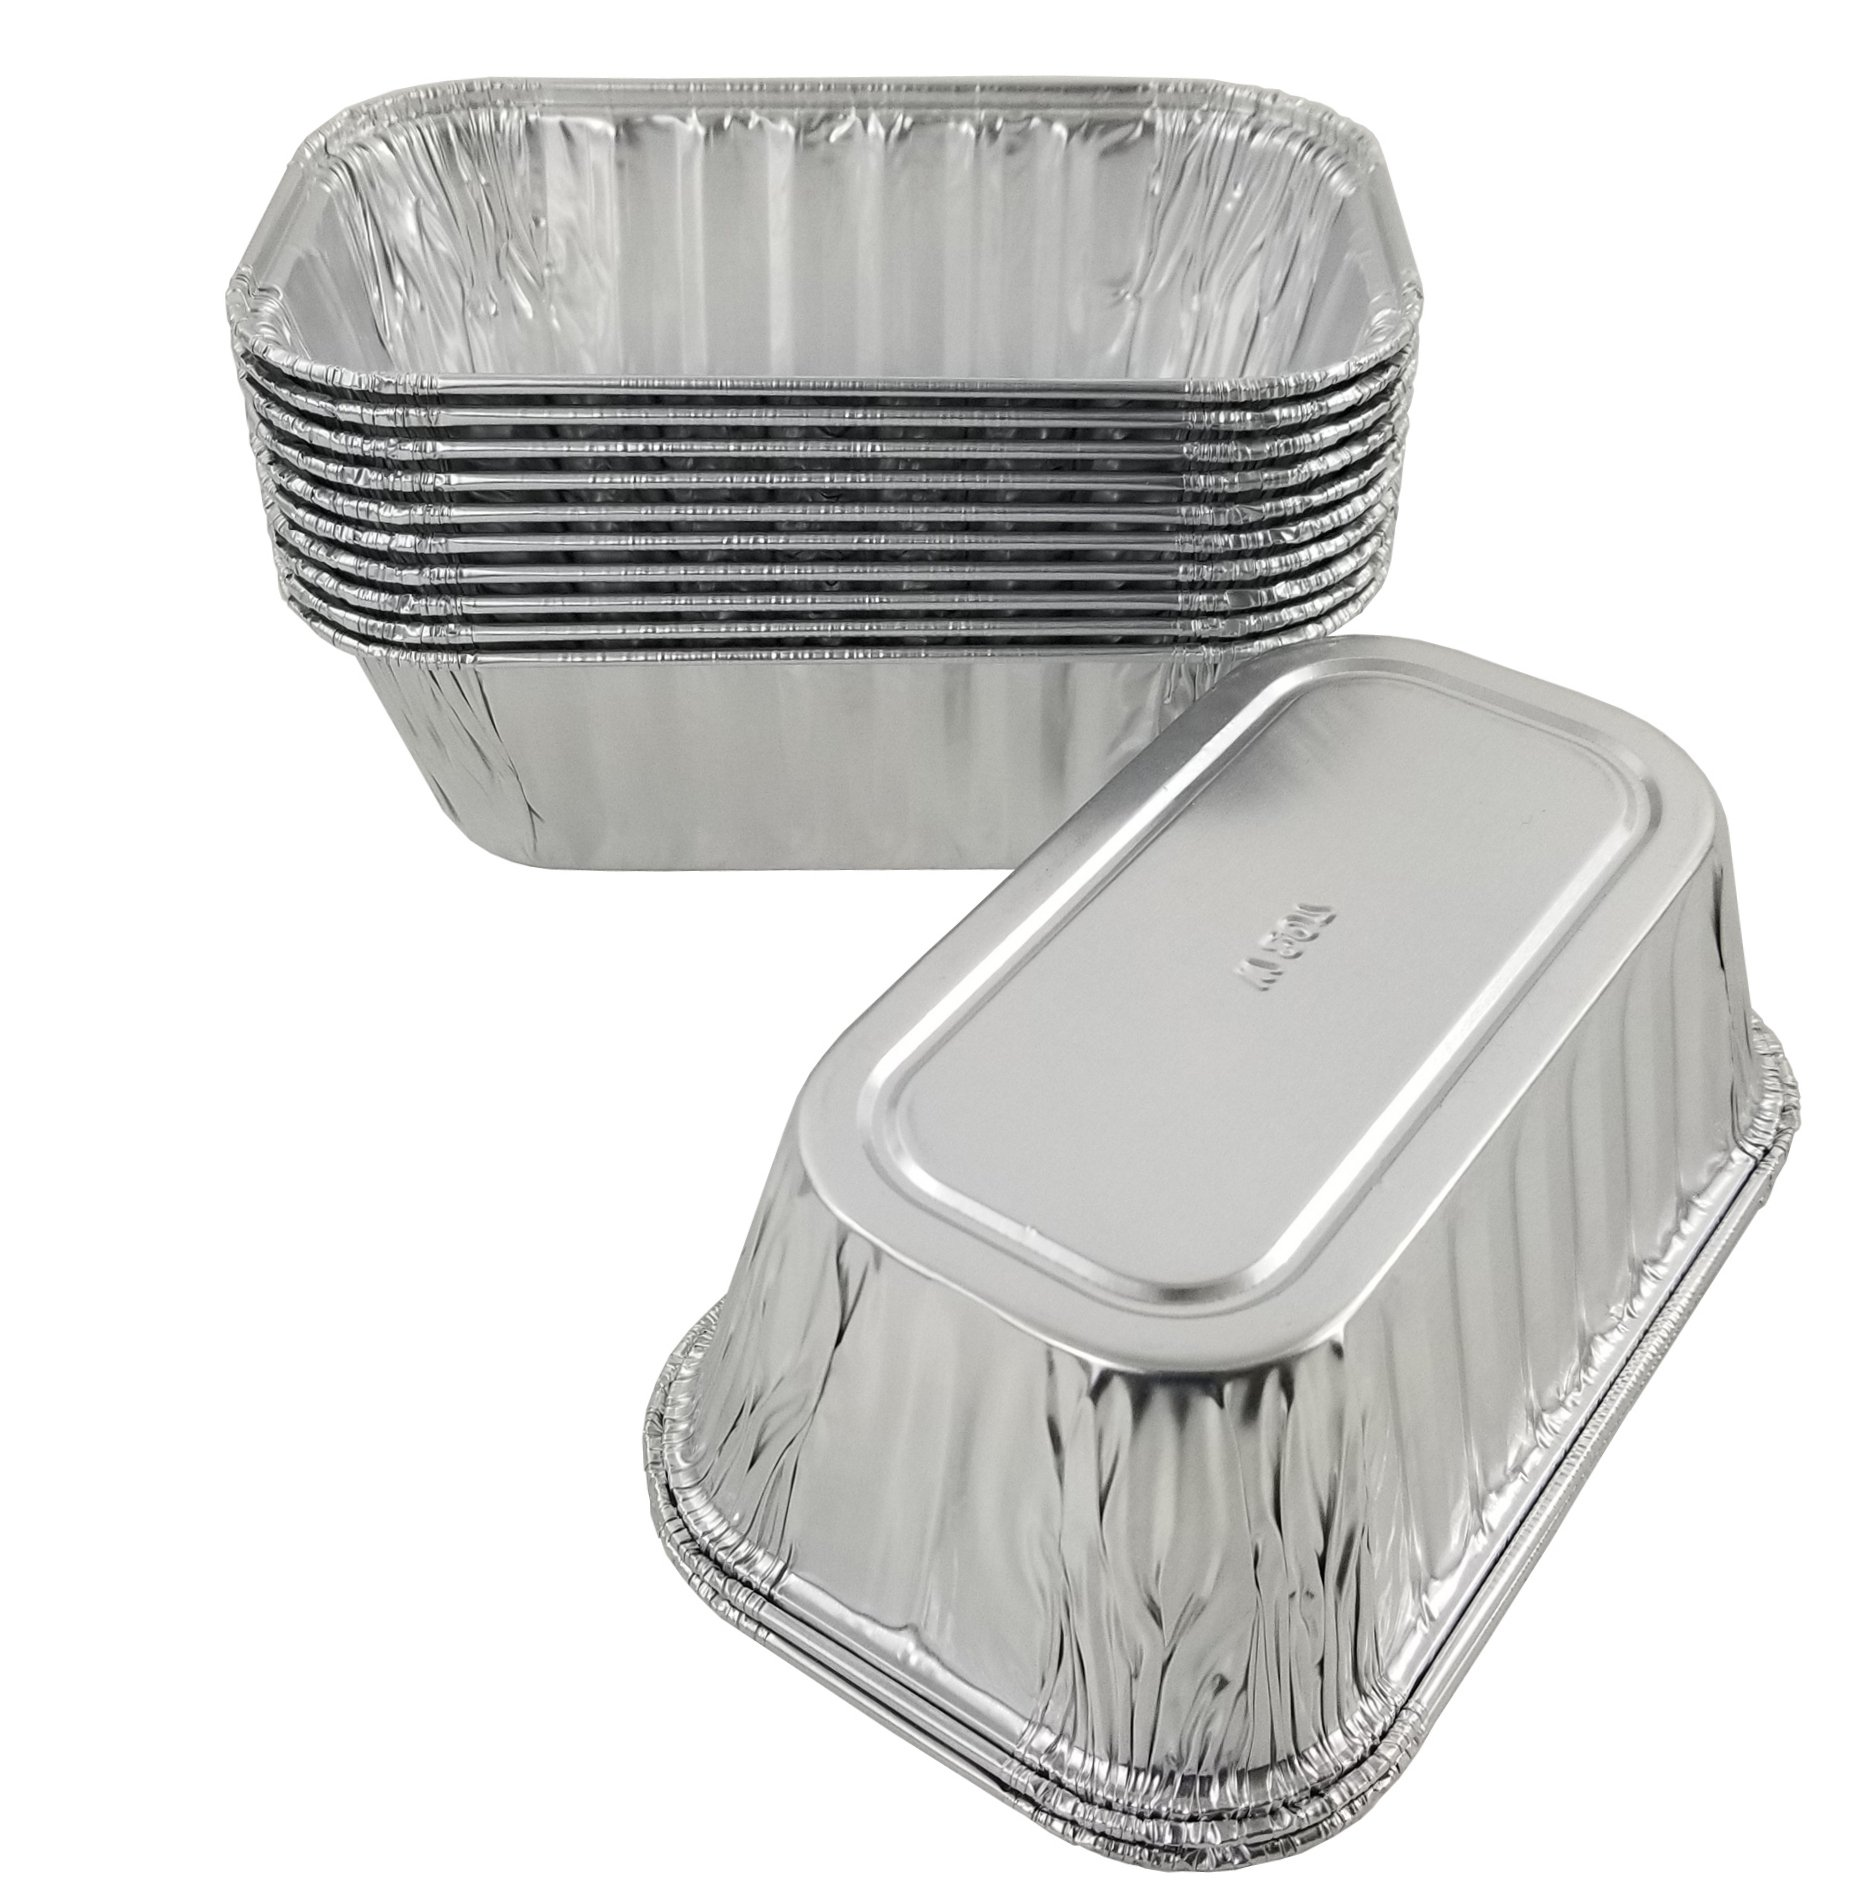 Pactogo Disposable 1 lb. Aluminum Foil Mini Loaf Pans with Clear Dome Lids (Pack of 100 Sets) by PACTOGO (Image #5)